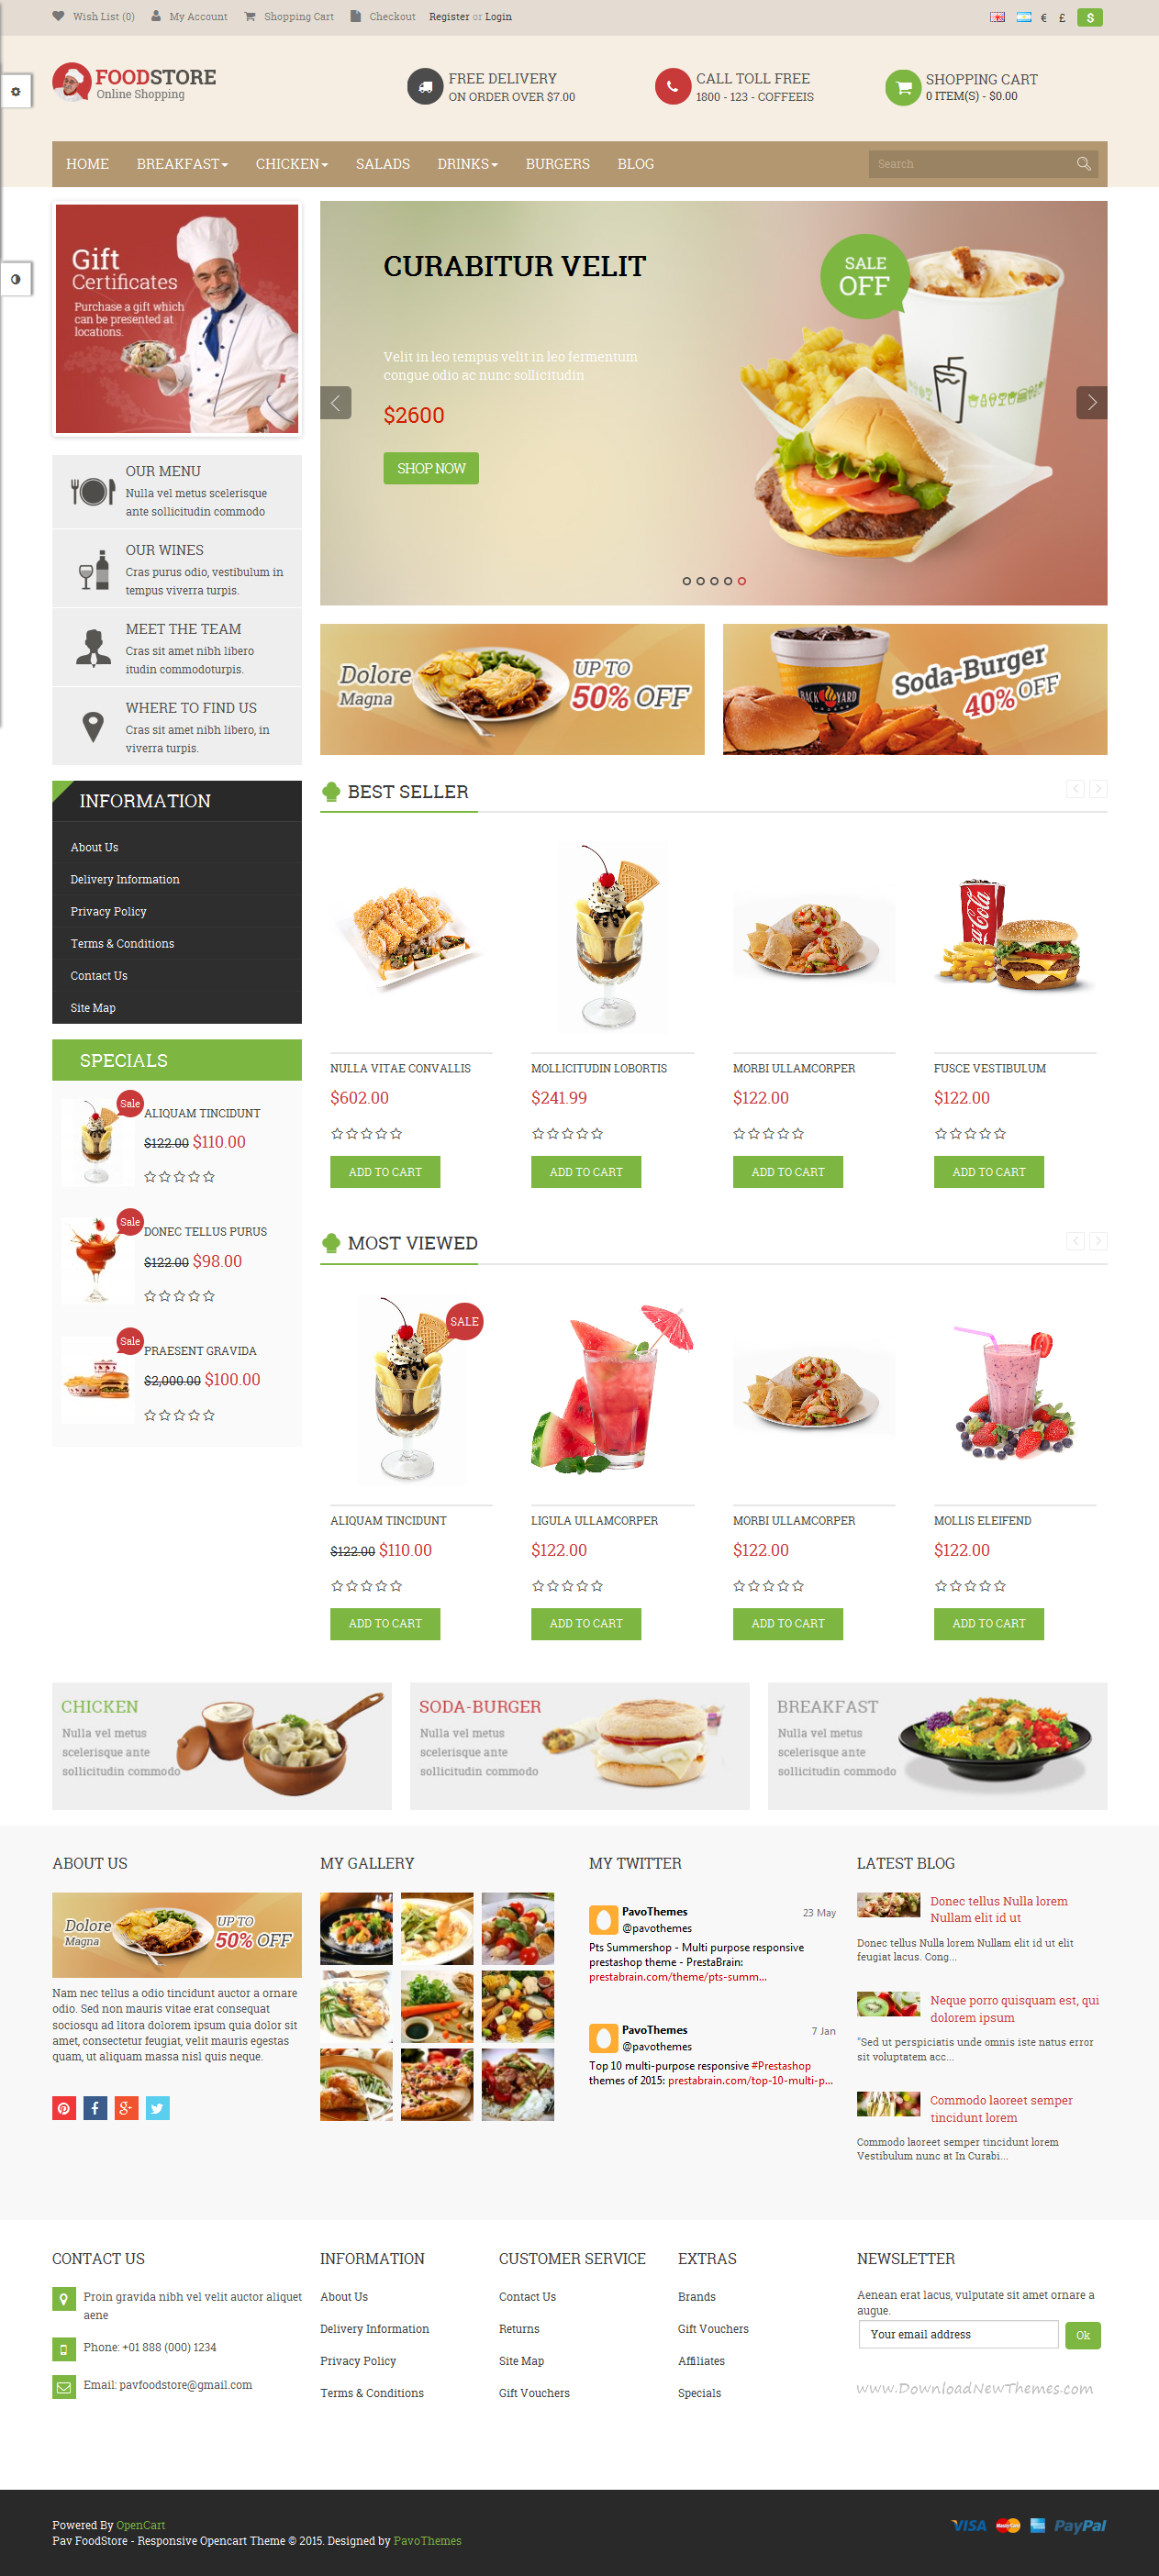 Pav Food Store is a Responsive Opencart Template suitable for any kind of #restaurant, hotel, café, coffee shop, spa and all kinds of food business that needs a feature rich and beautiful presence online. #website